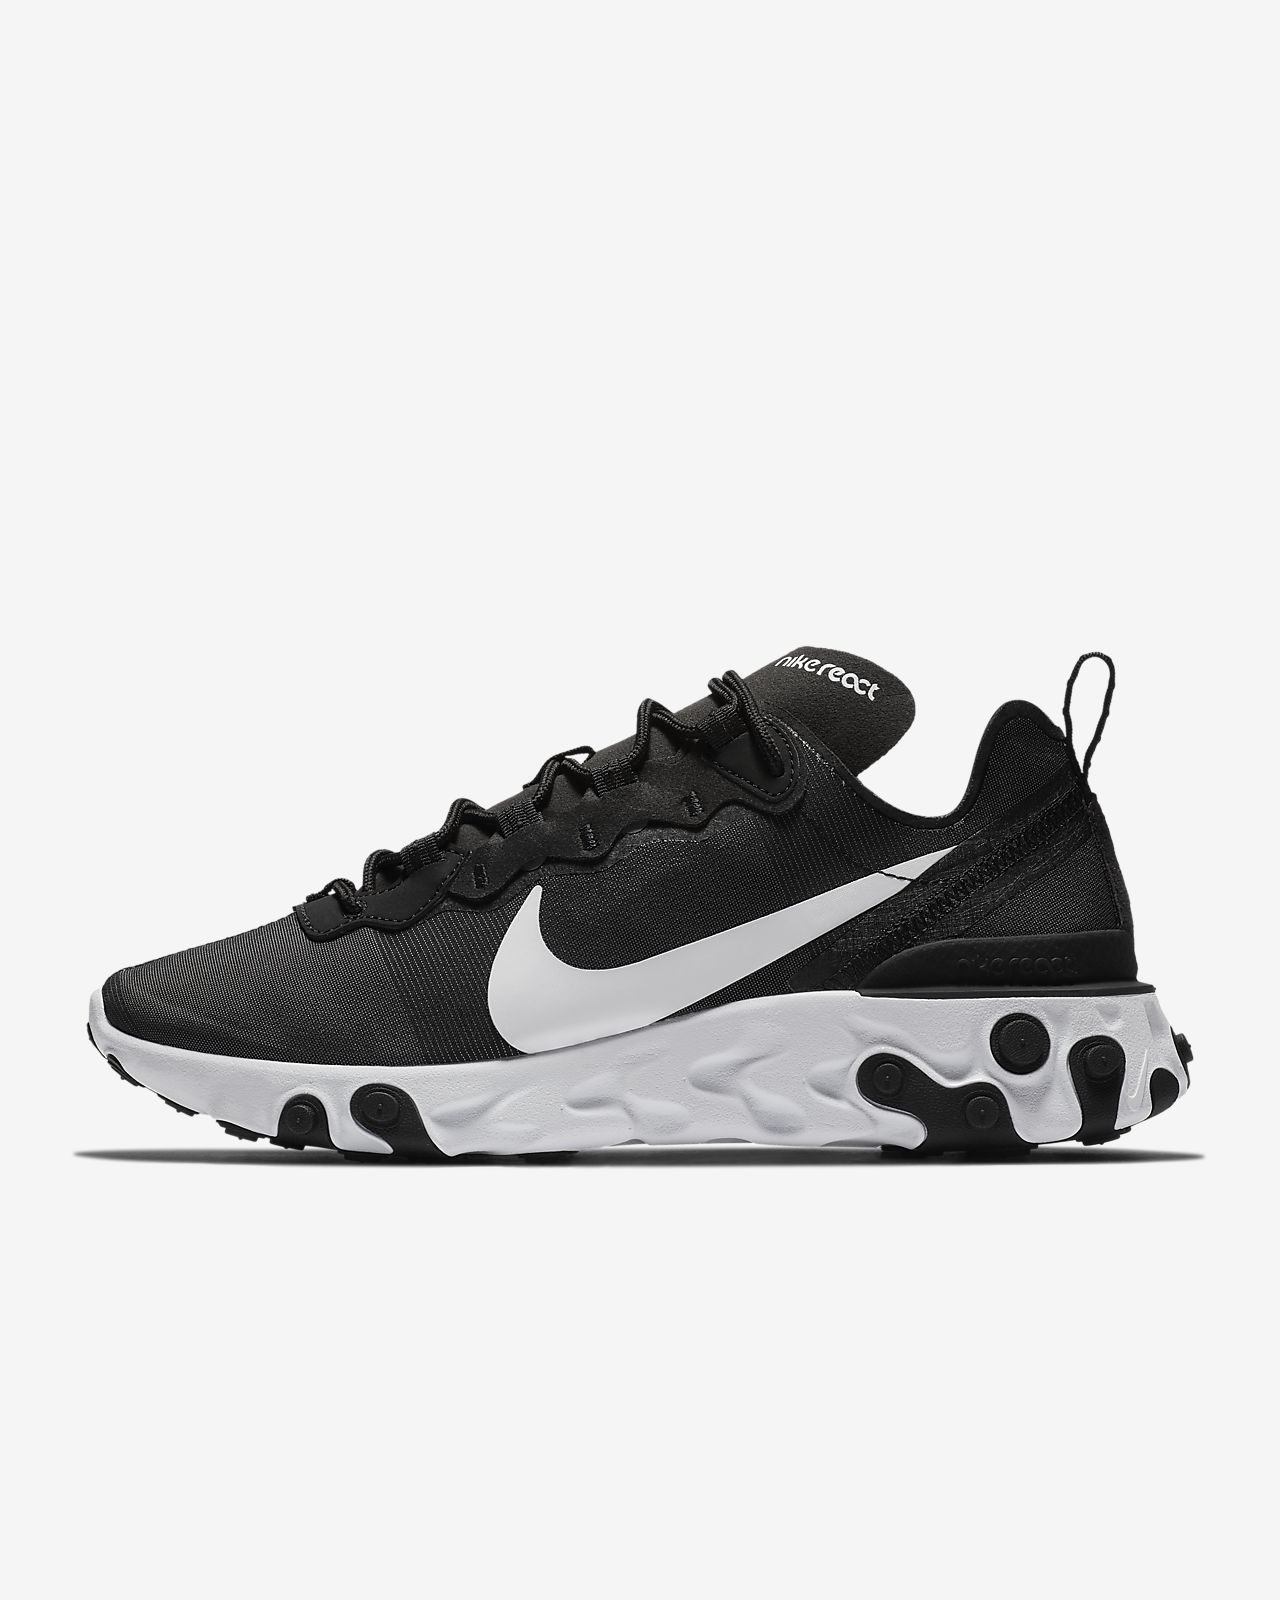 b4c5f97cbb1 Nike React Element 55 Women s Shoe. Nike.com GB